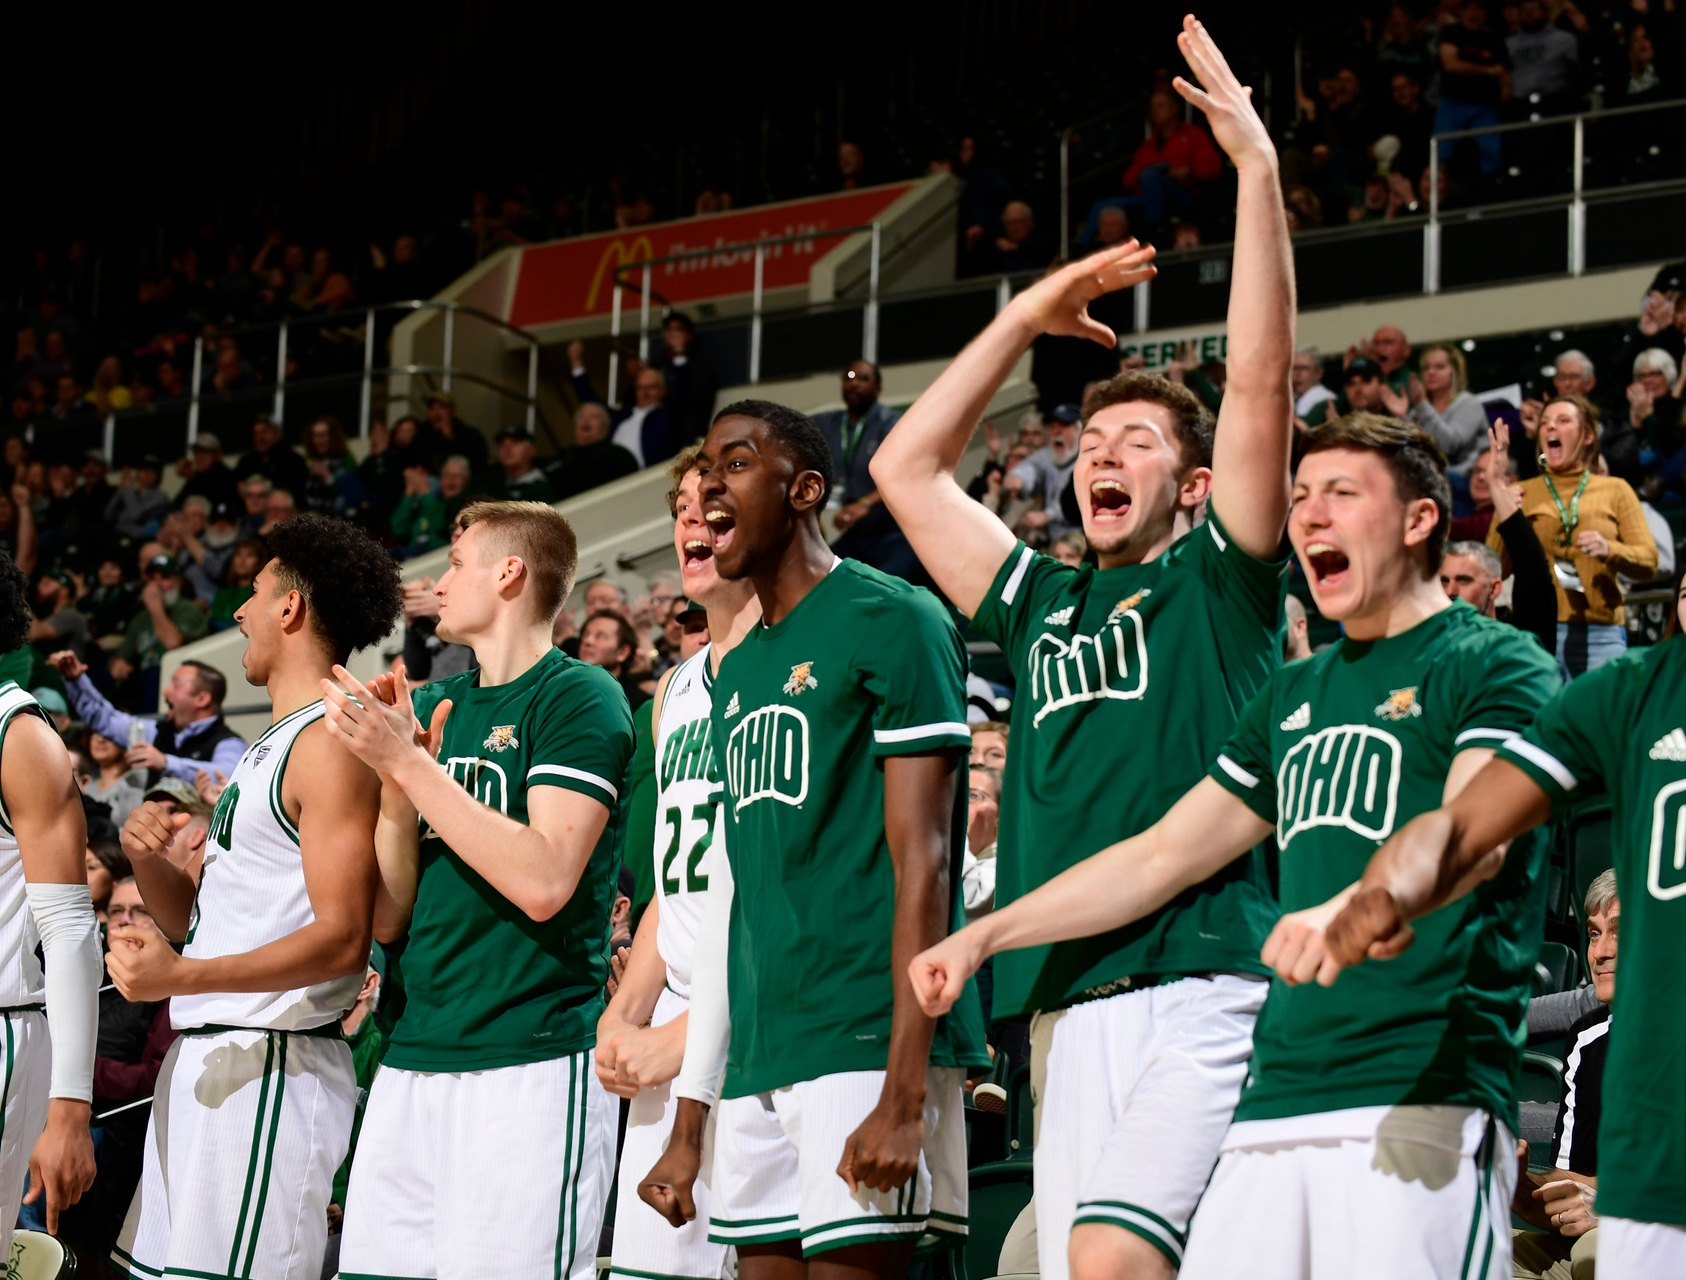 Ohio Men's Basketball Road Game at Akron to Air on CBS Sports Network